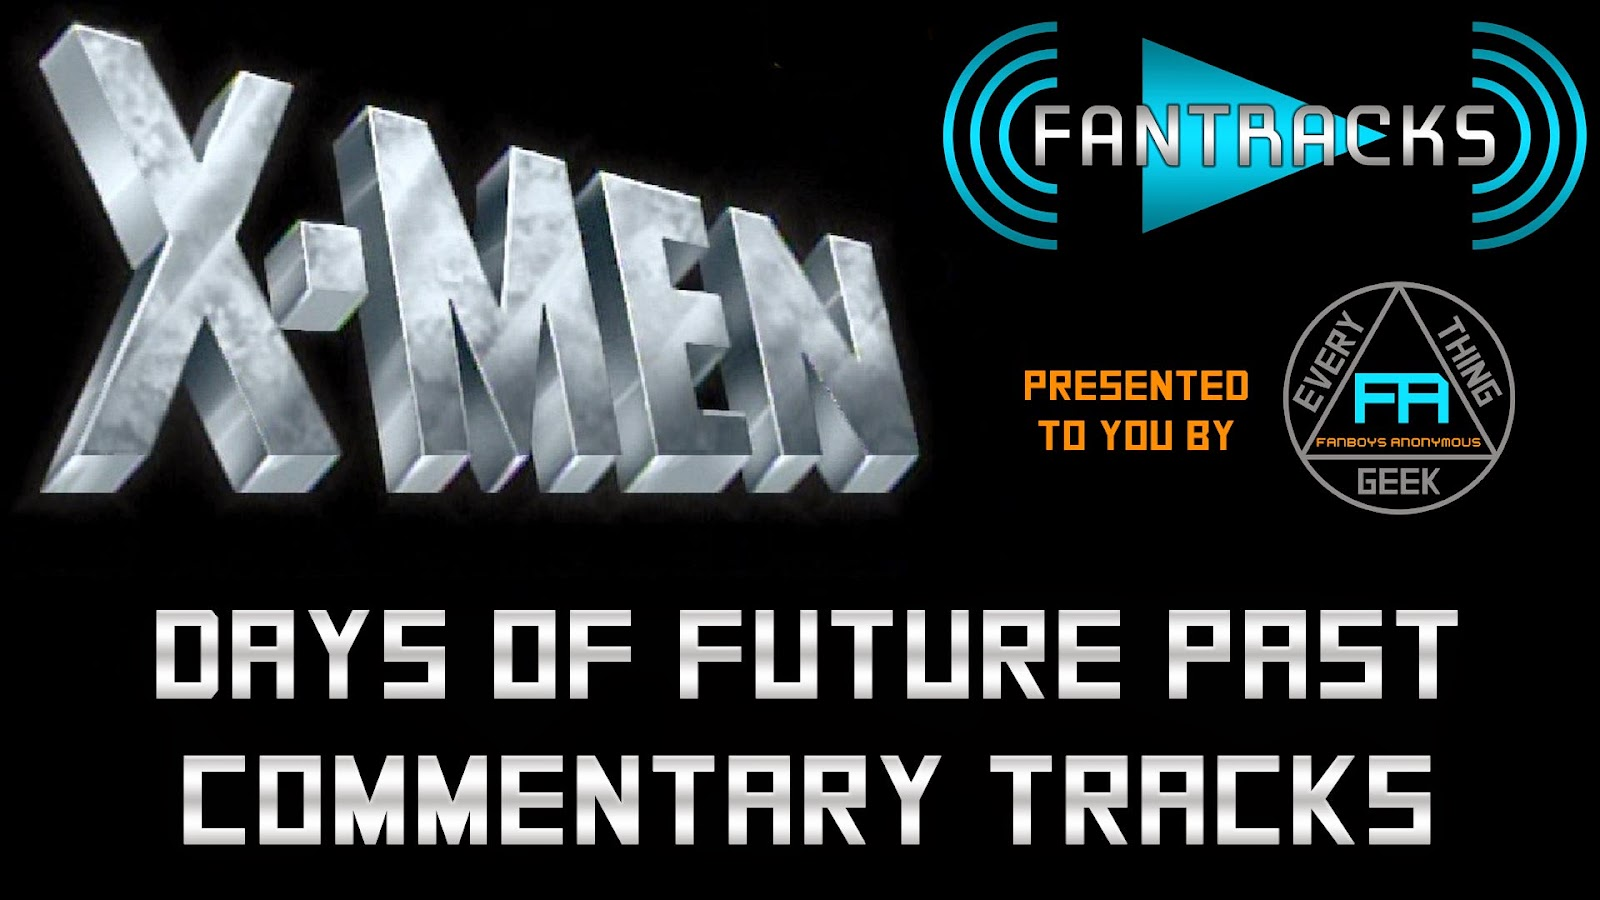 Listen to X-Men Days of Future Past commentary FanTracks